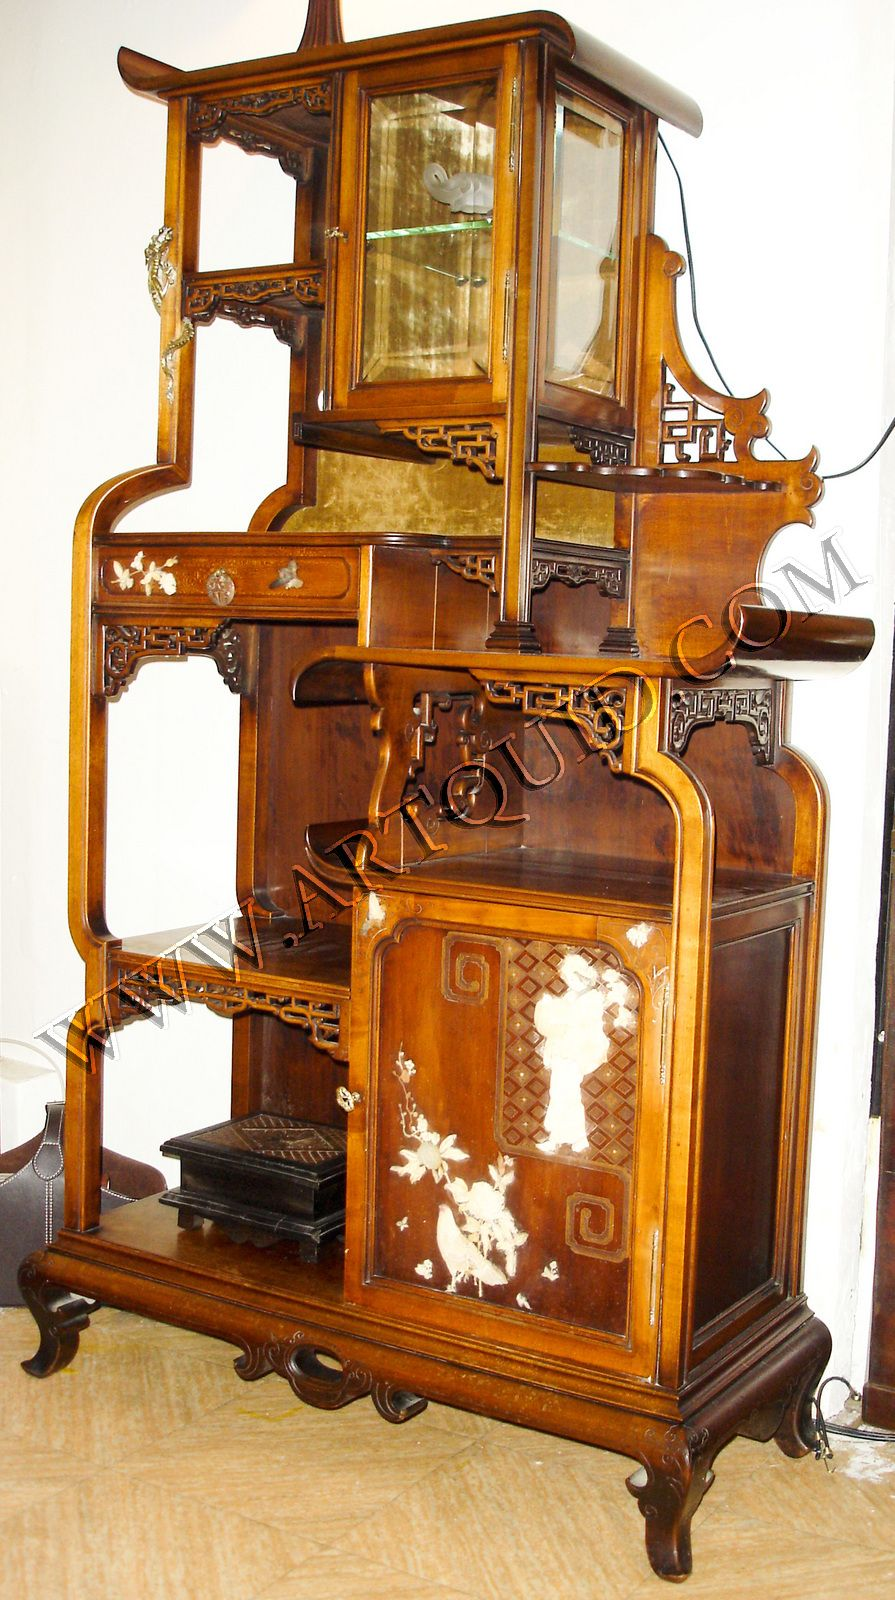 Japan  Japanese FurnitureJapan StyleTraditional JapaneseChinoiserieAntique. Japan   Japanese furniture  Japan and Aesthetic movement